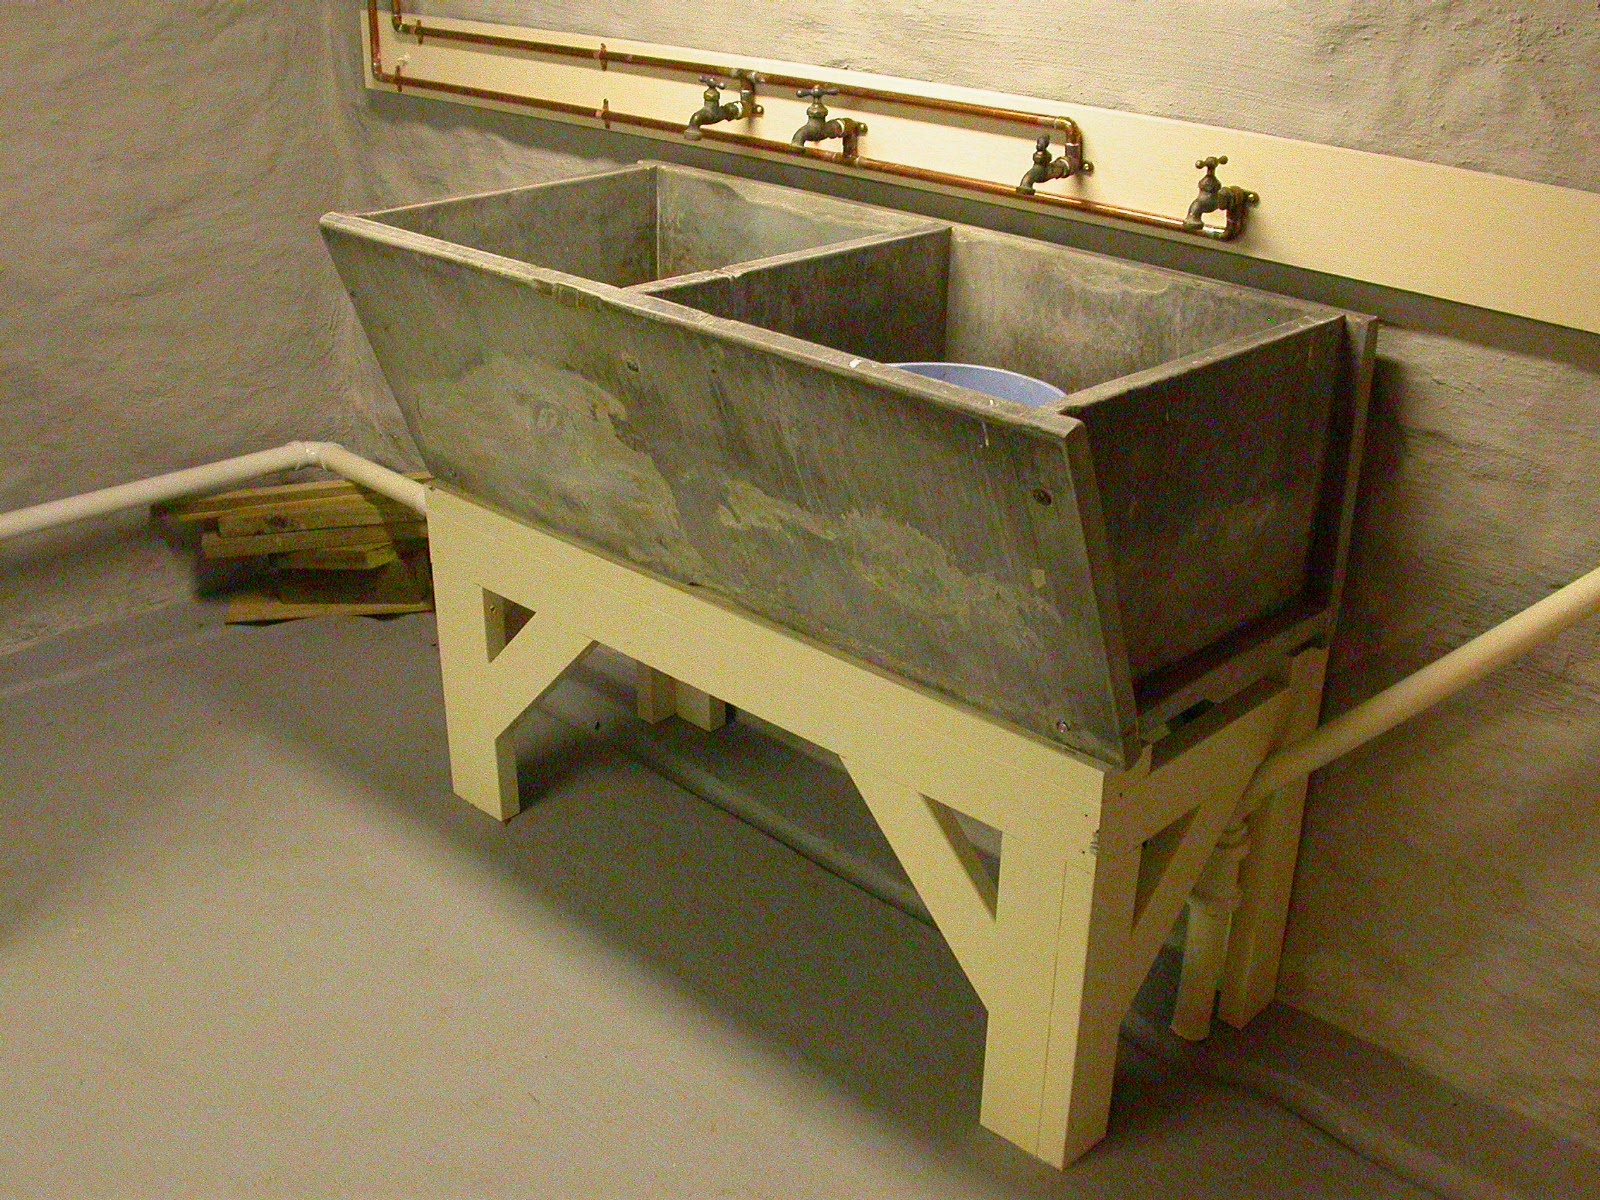 Soapstone Sink : Pheidias Renovates: Refurbishing a Soapstone Sink